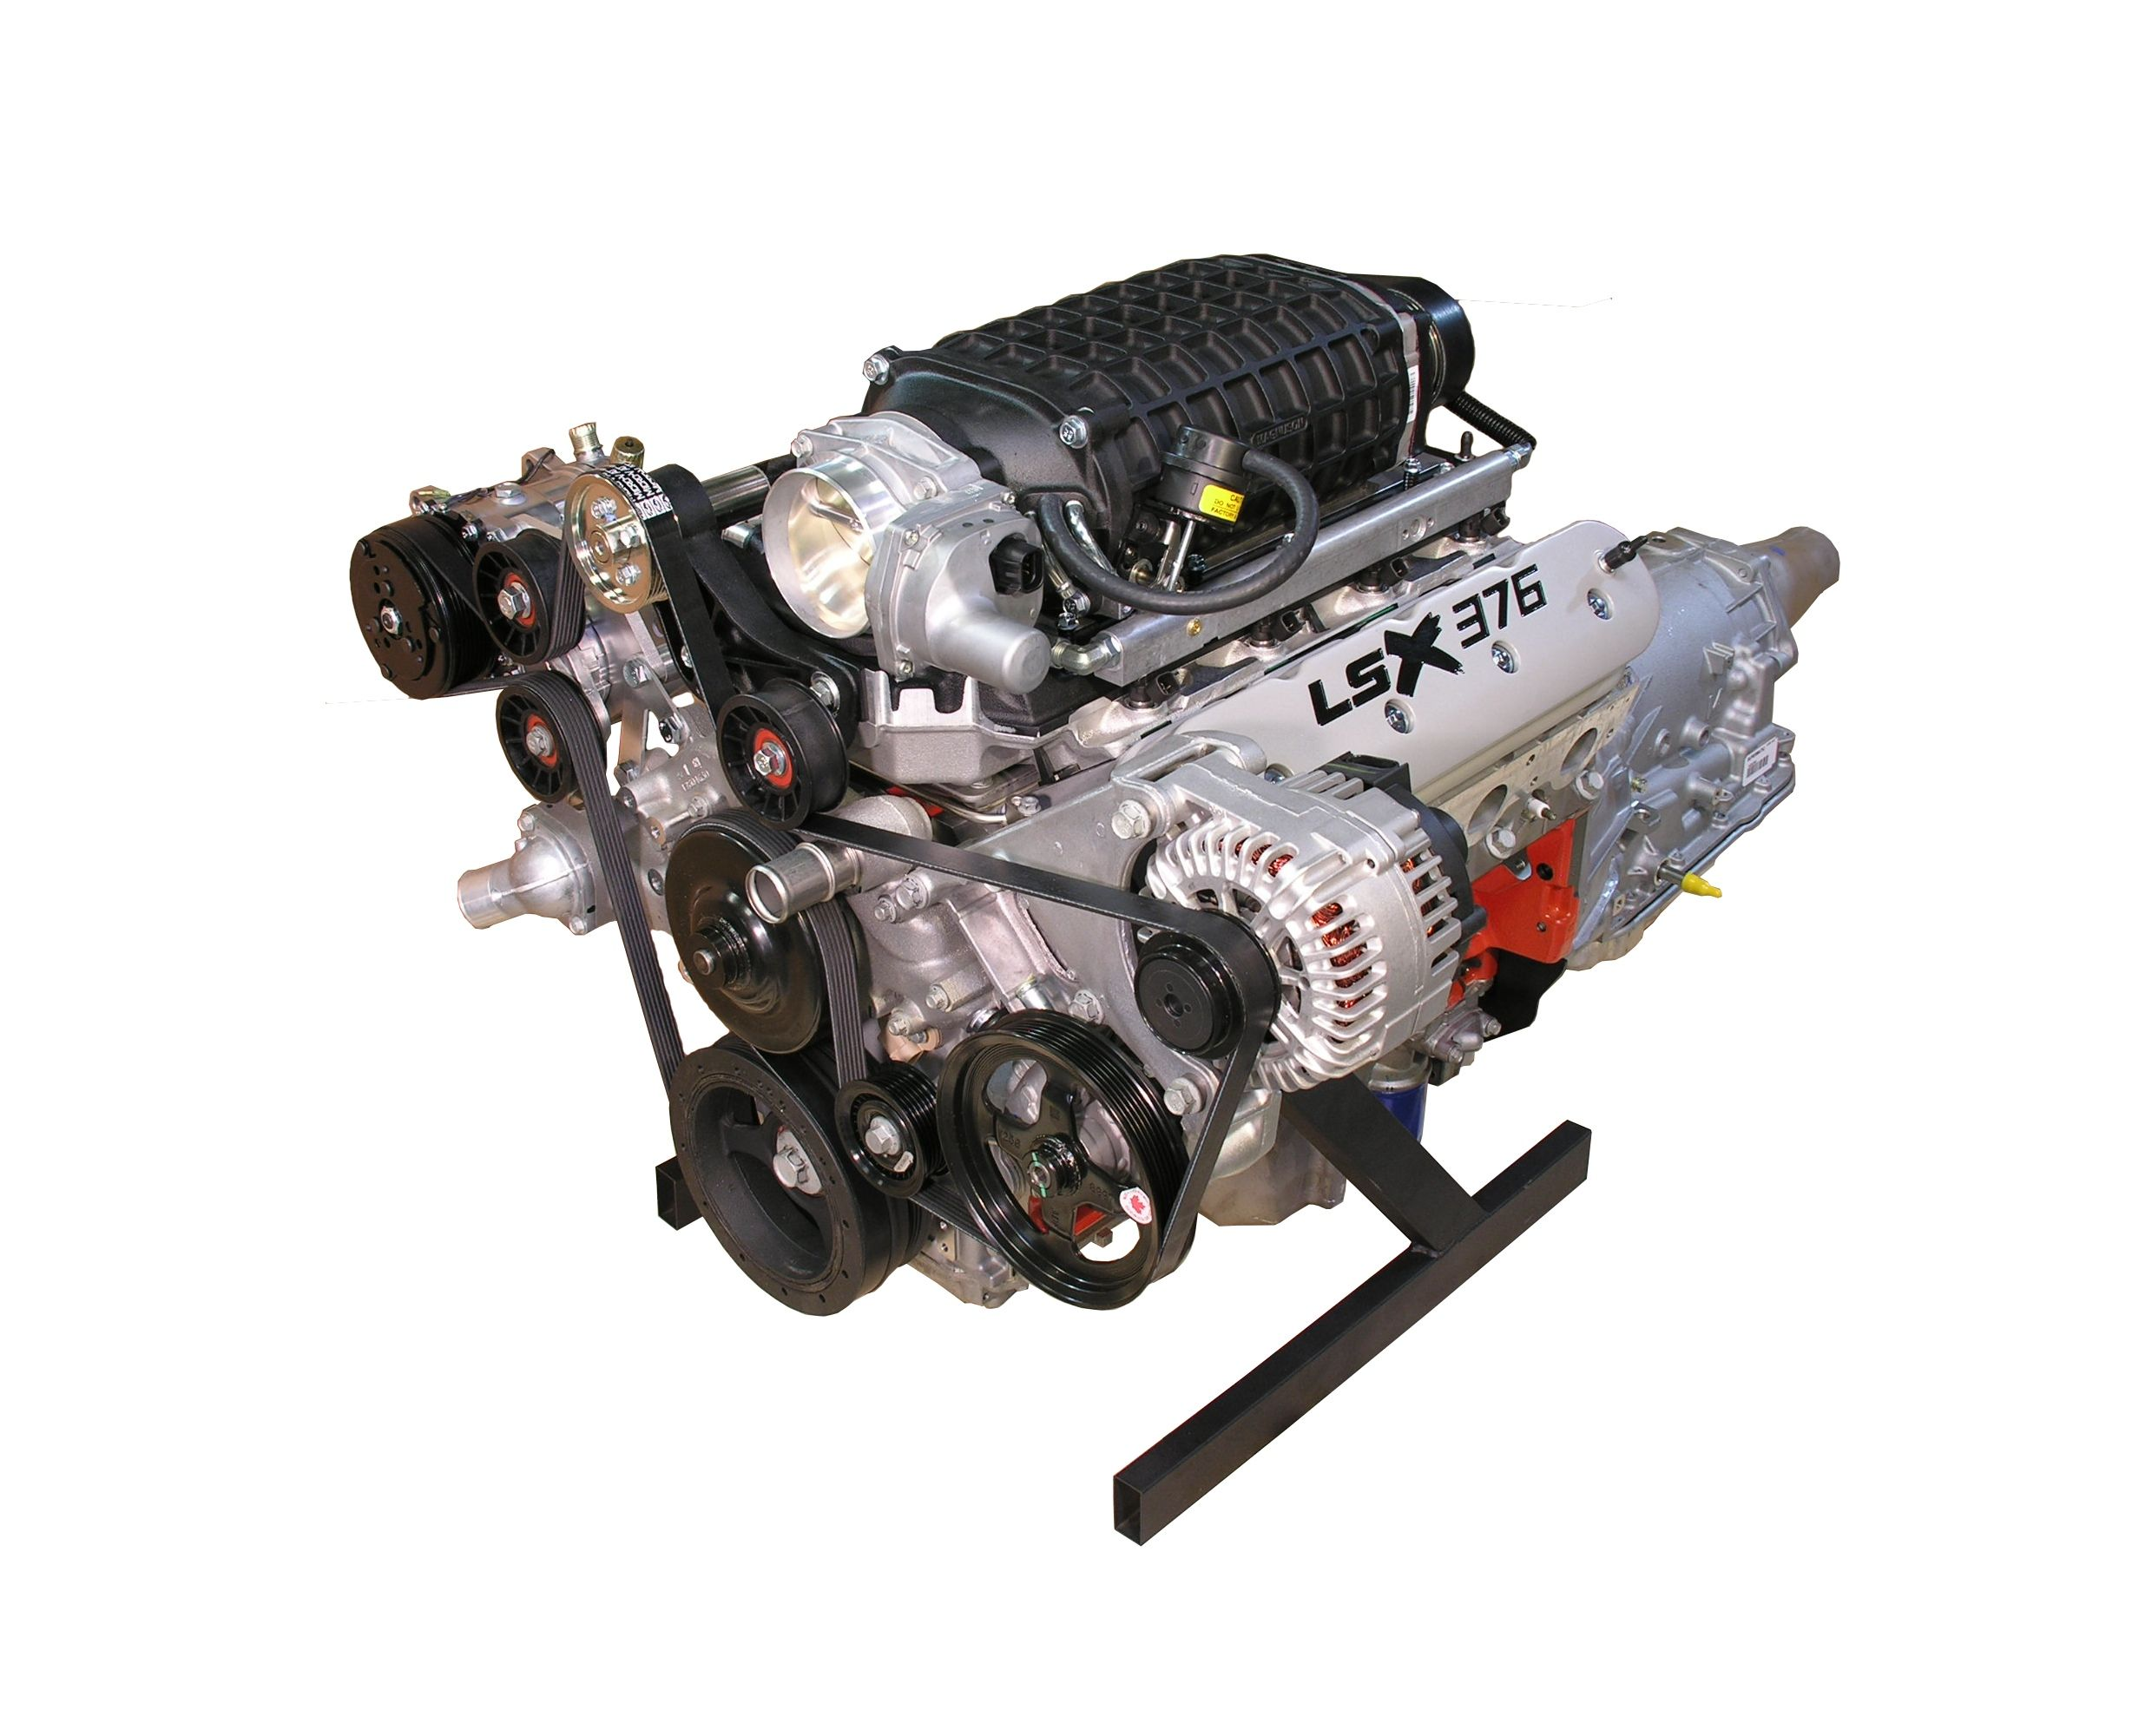 LSx 376 Engine with TVS 2300 Magnuson Supercharger - 600 HP